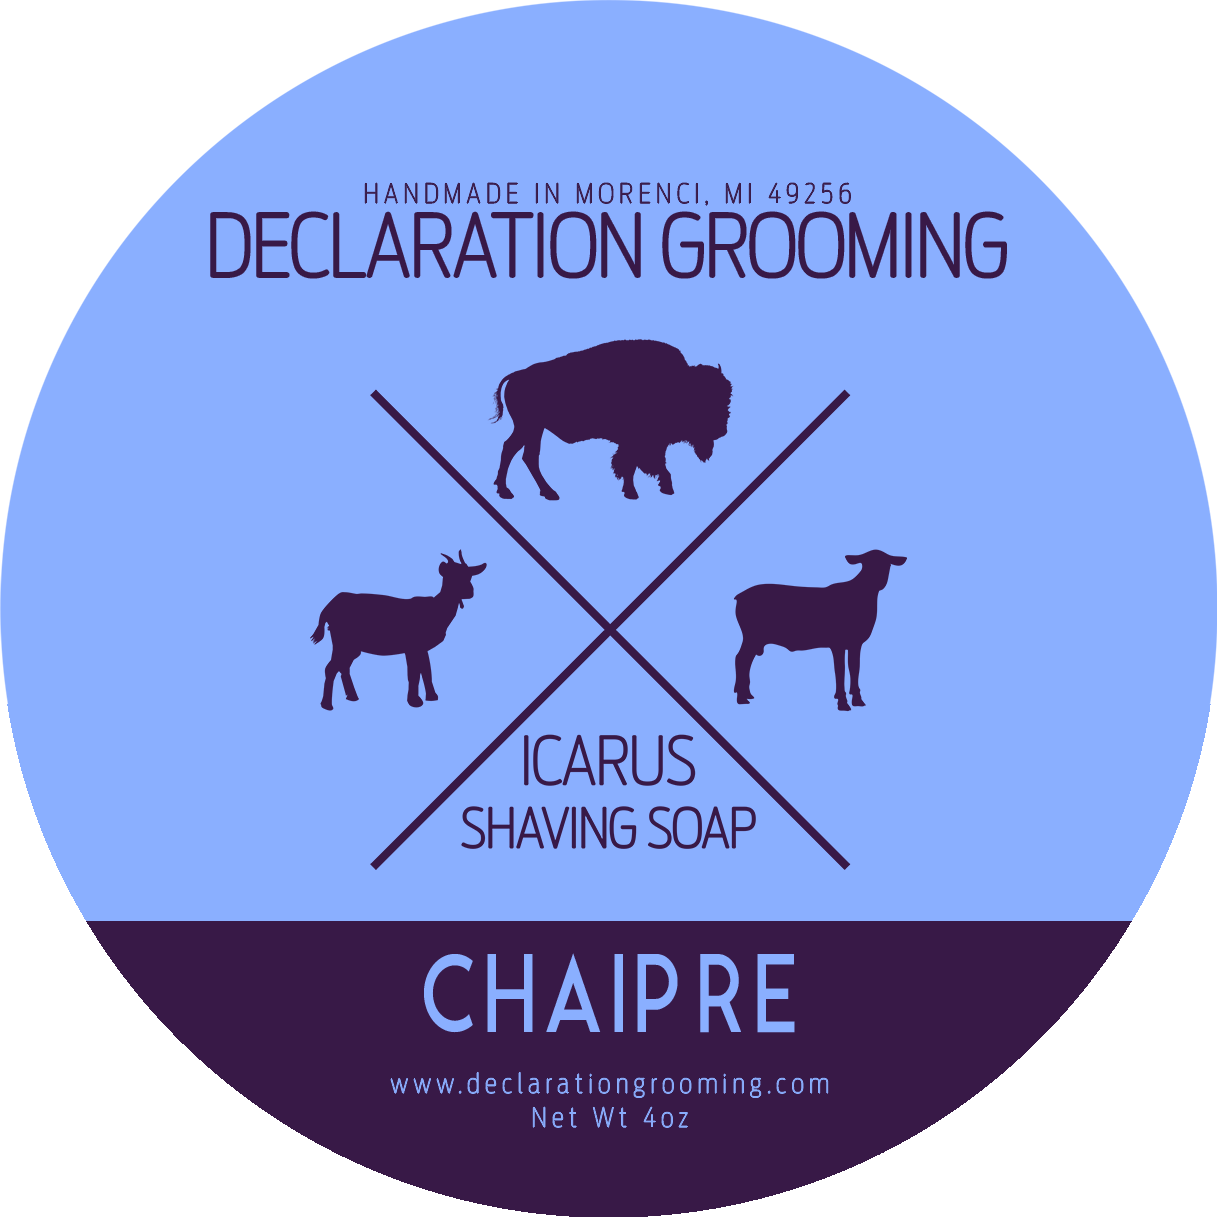 Declaration Grooming - Declaration Grooming - Chaipre - Soap image